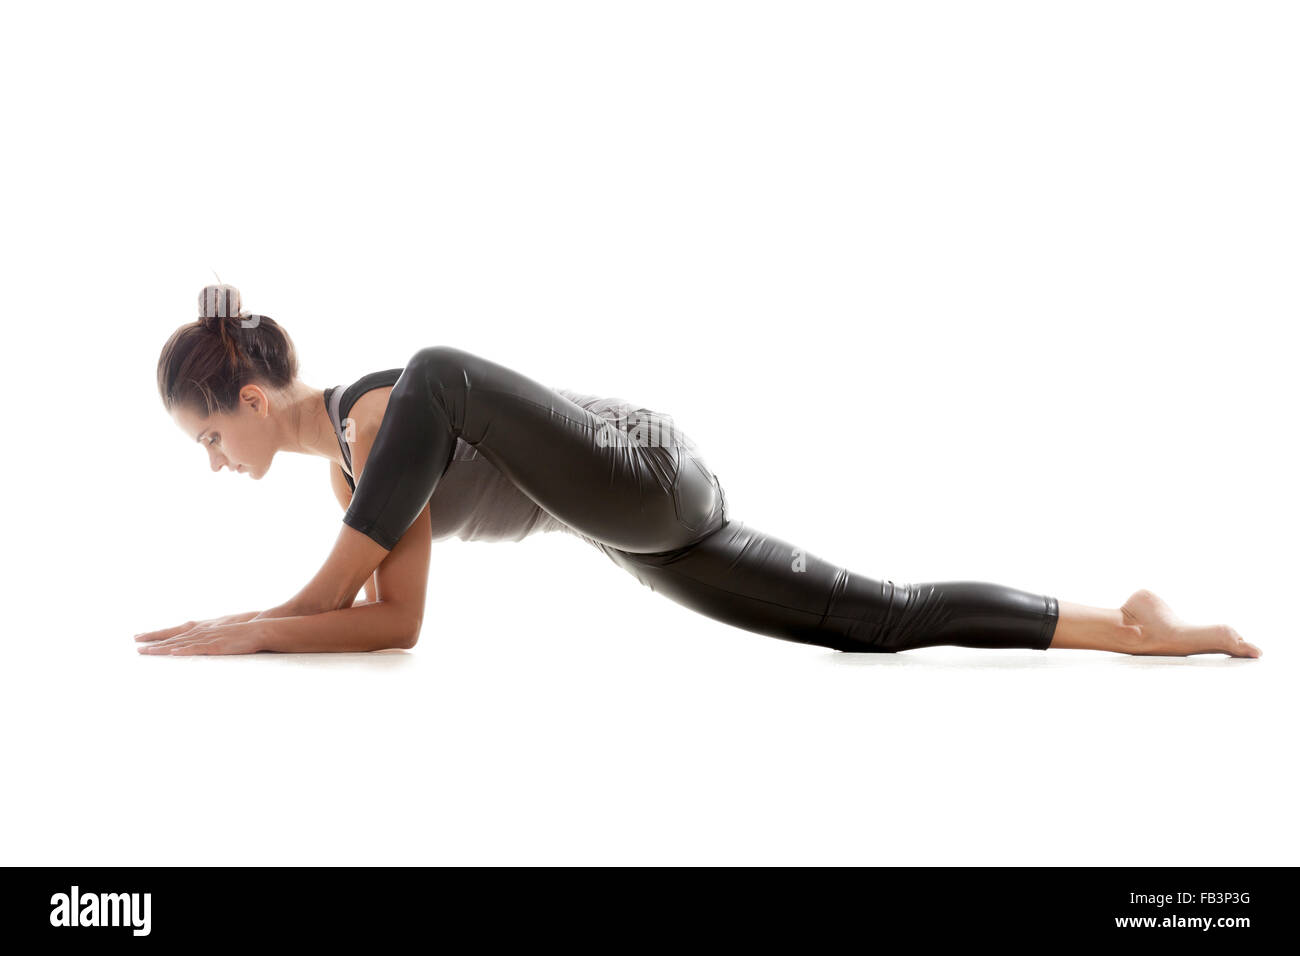 Sporty yoga girl on white background exercises, the left knee is bent over the left ankle - Stock Image